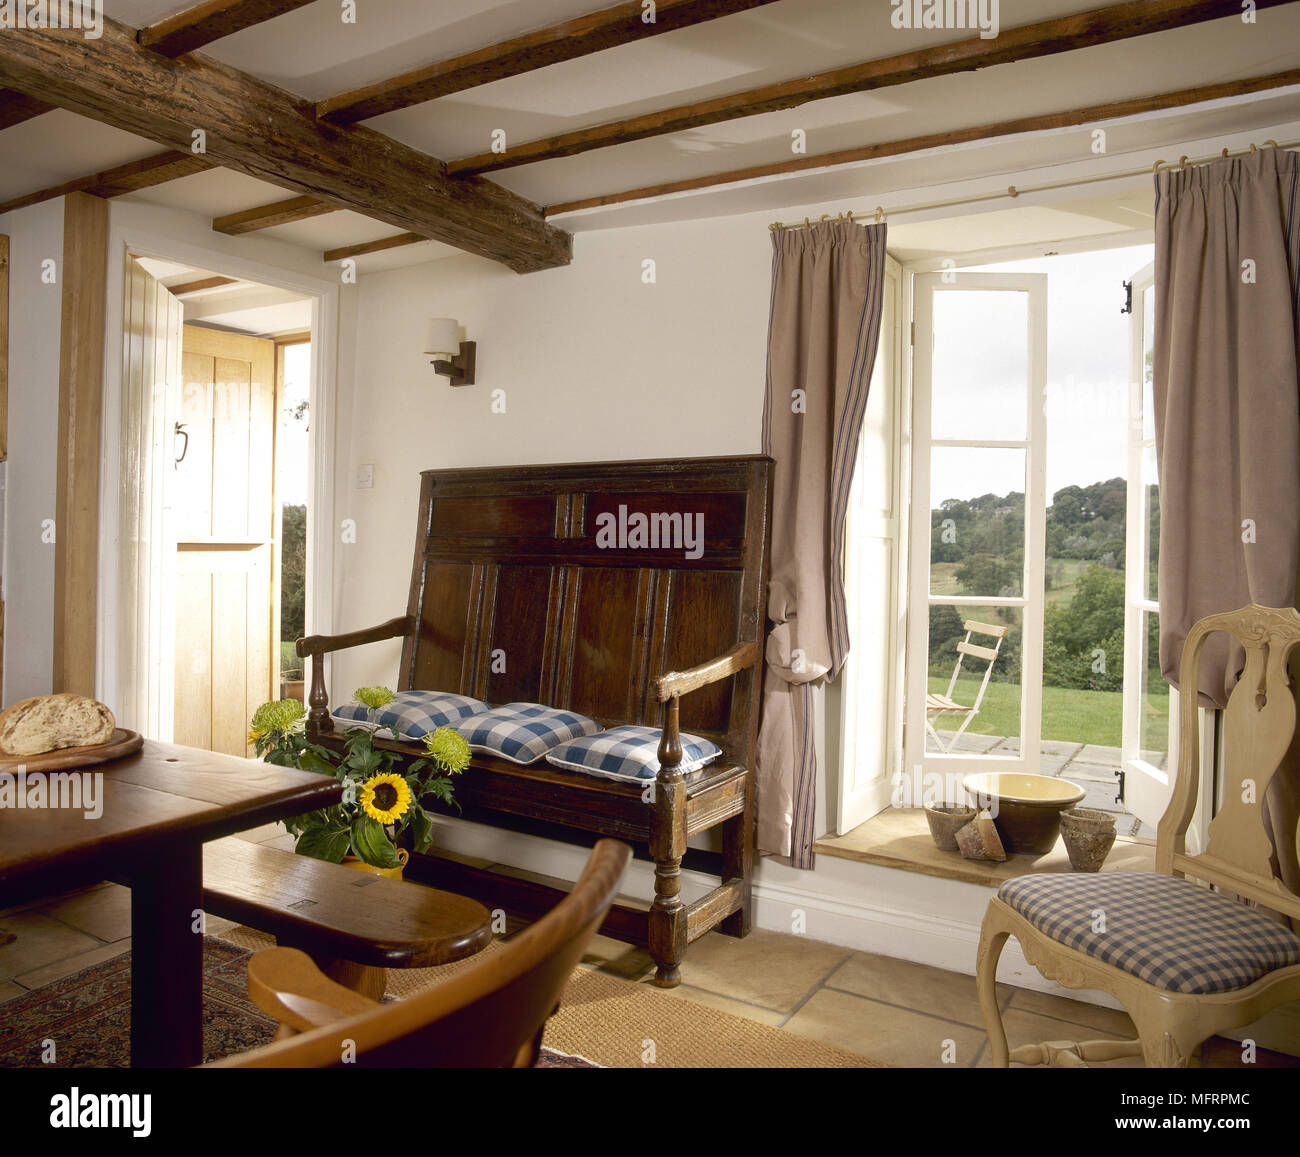 Swell Country Cottage Dining Room With Wood Beamed Ceiling Settee Gmtry Best Dining Table And Chair Ideas Images Gmtryco